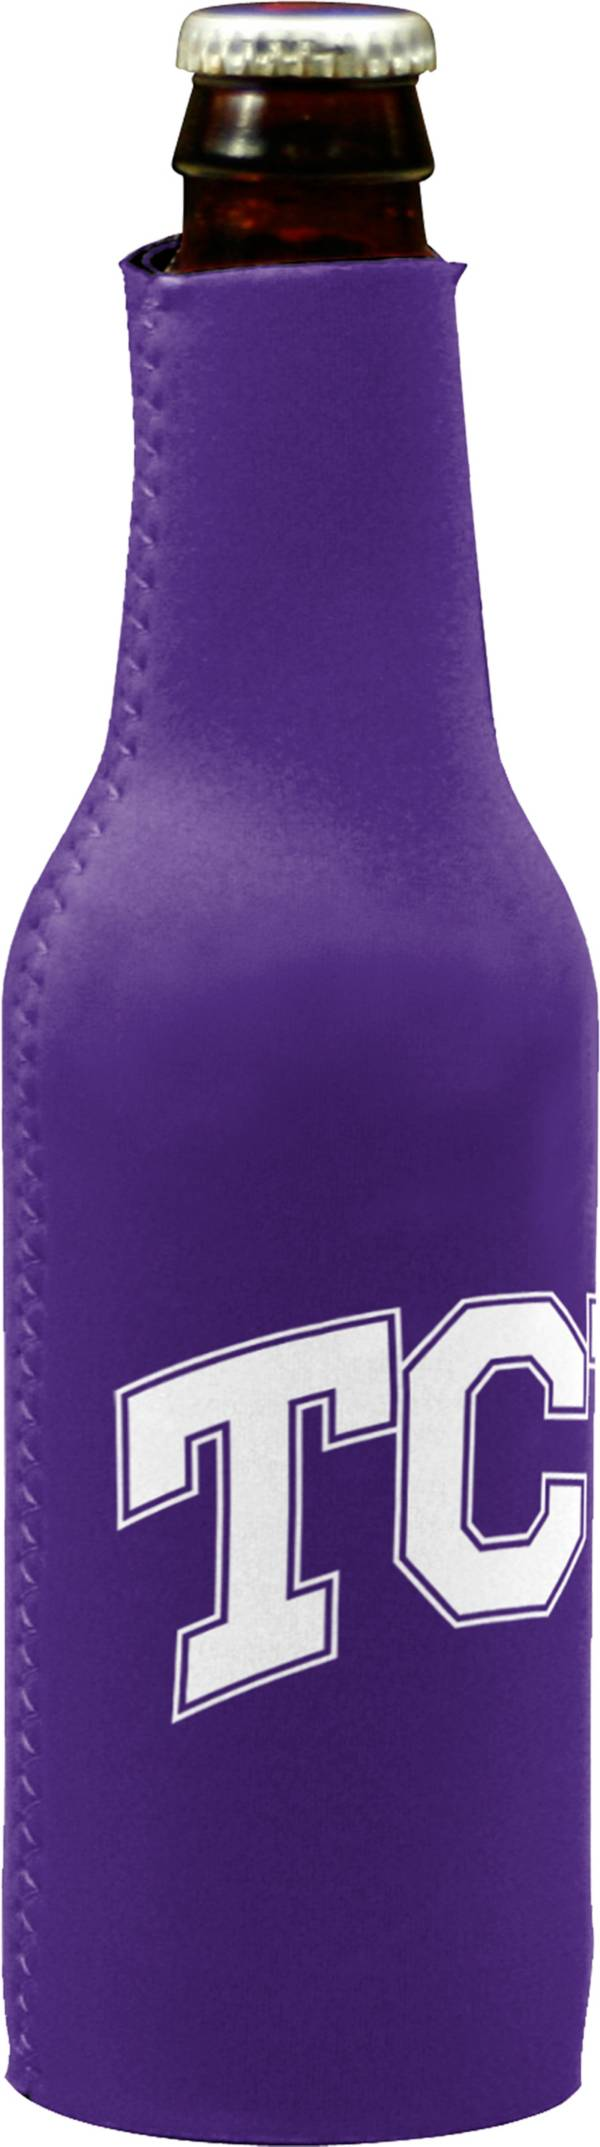 TCU Horned Frogs Bottle Koozie product image